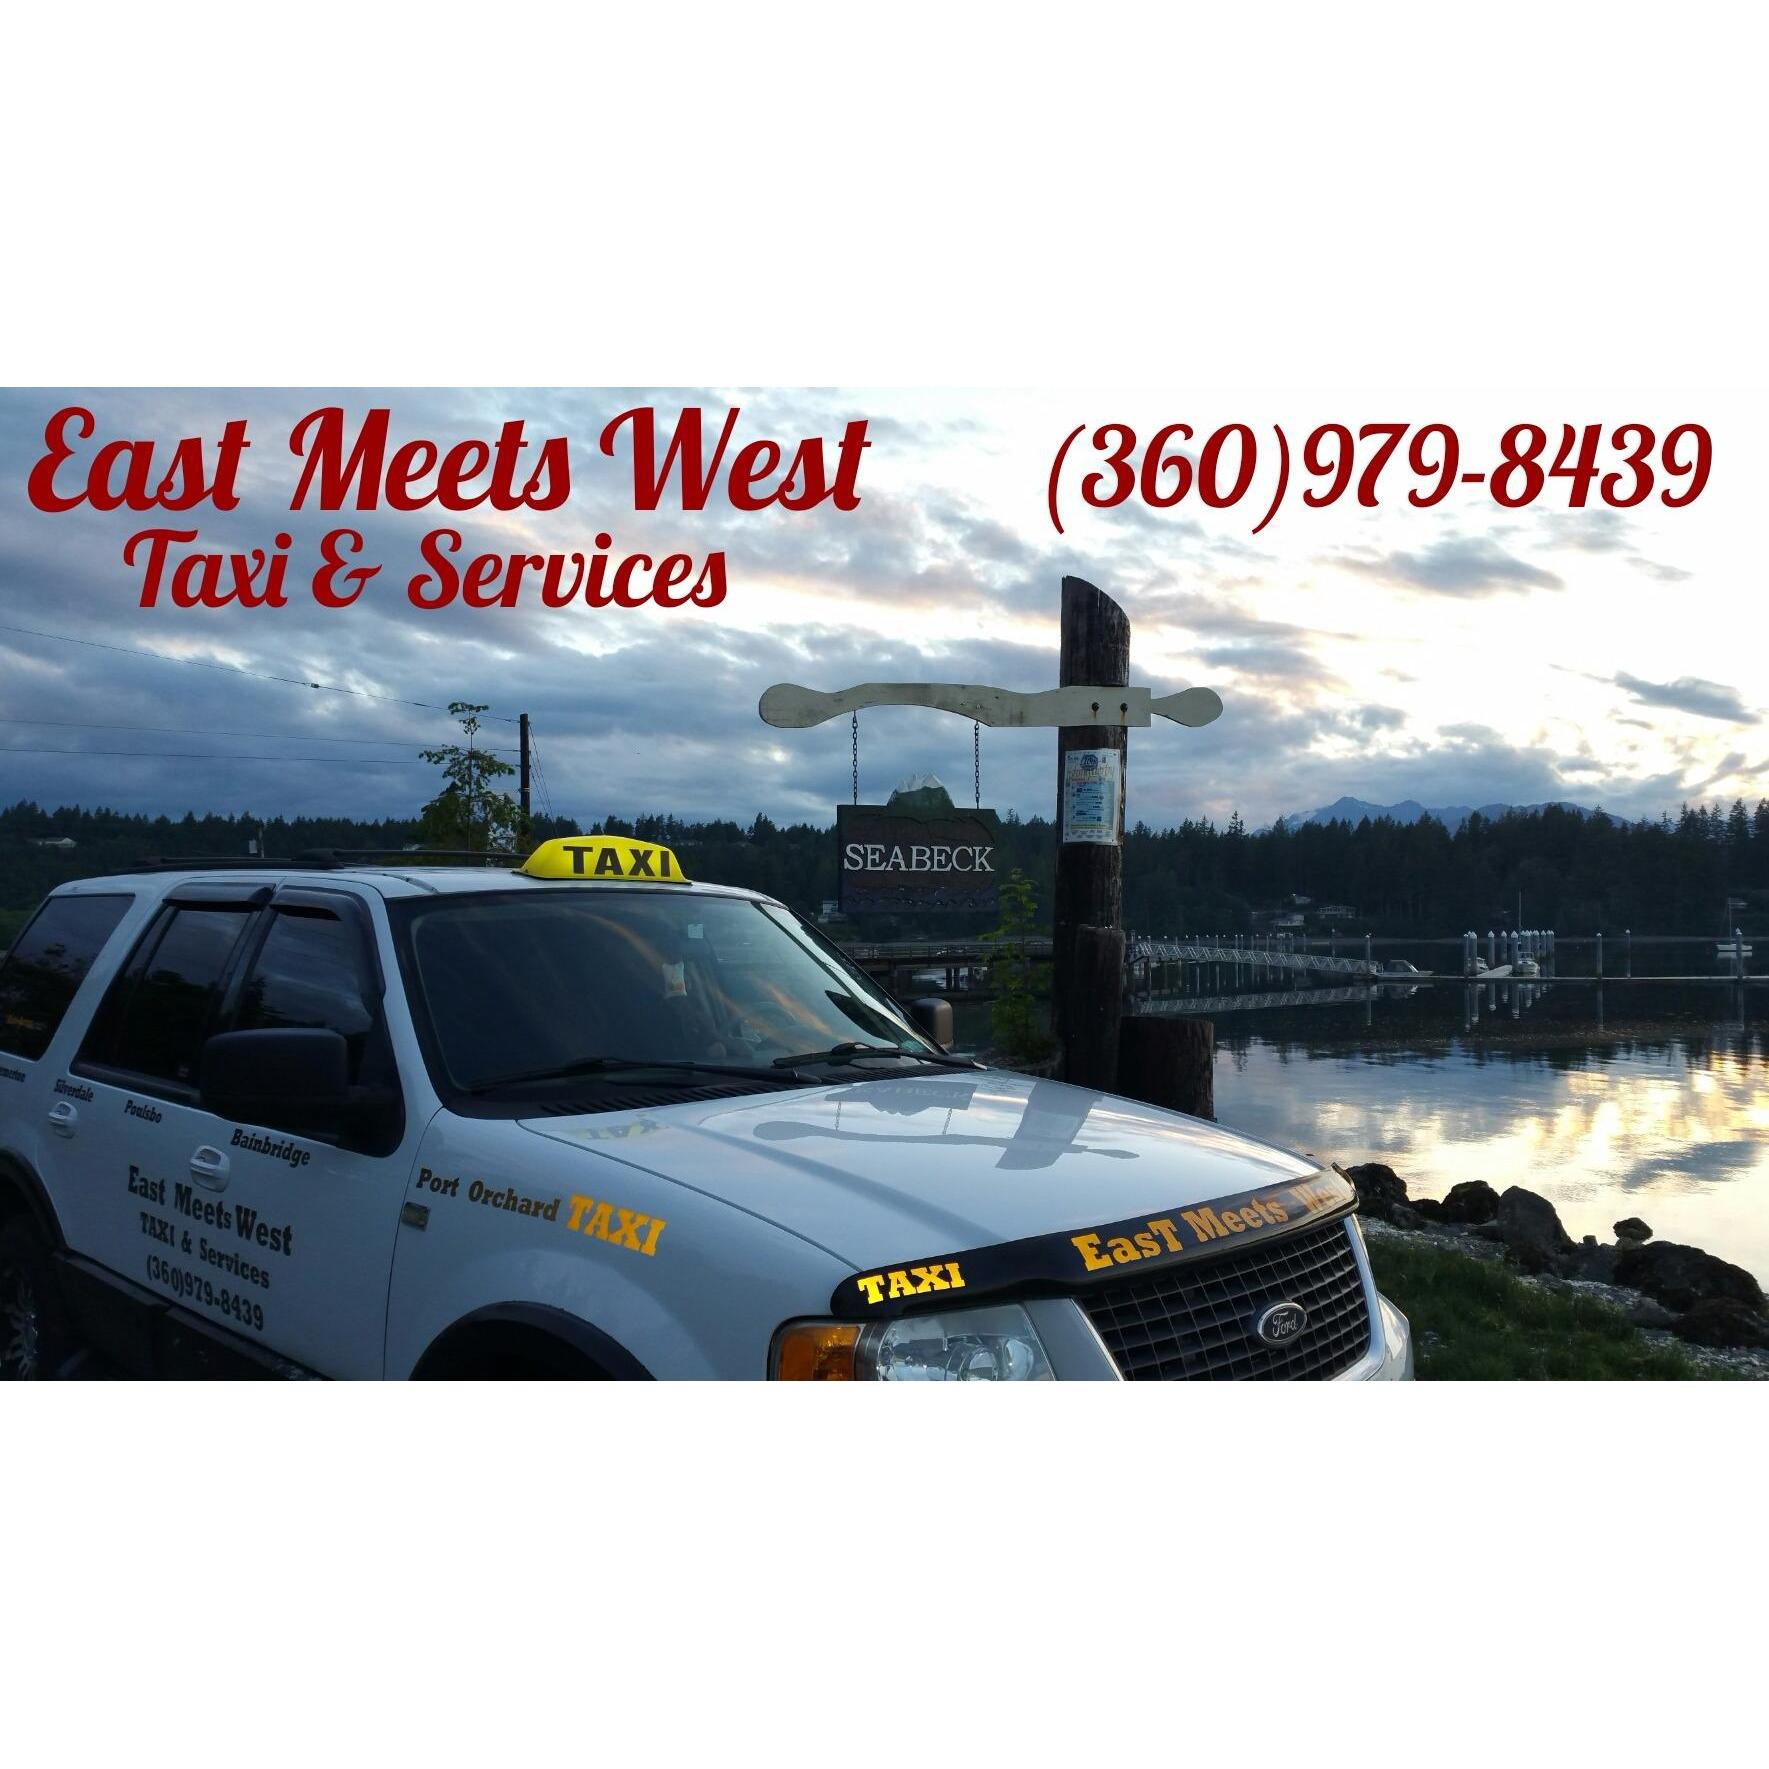 East Meets West Taxi & Services